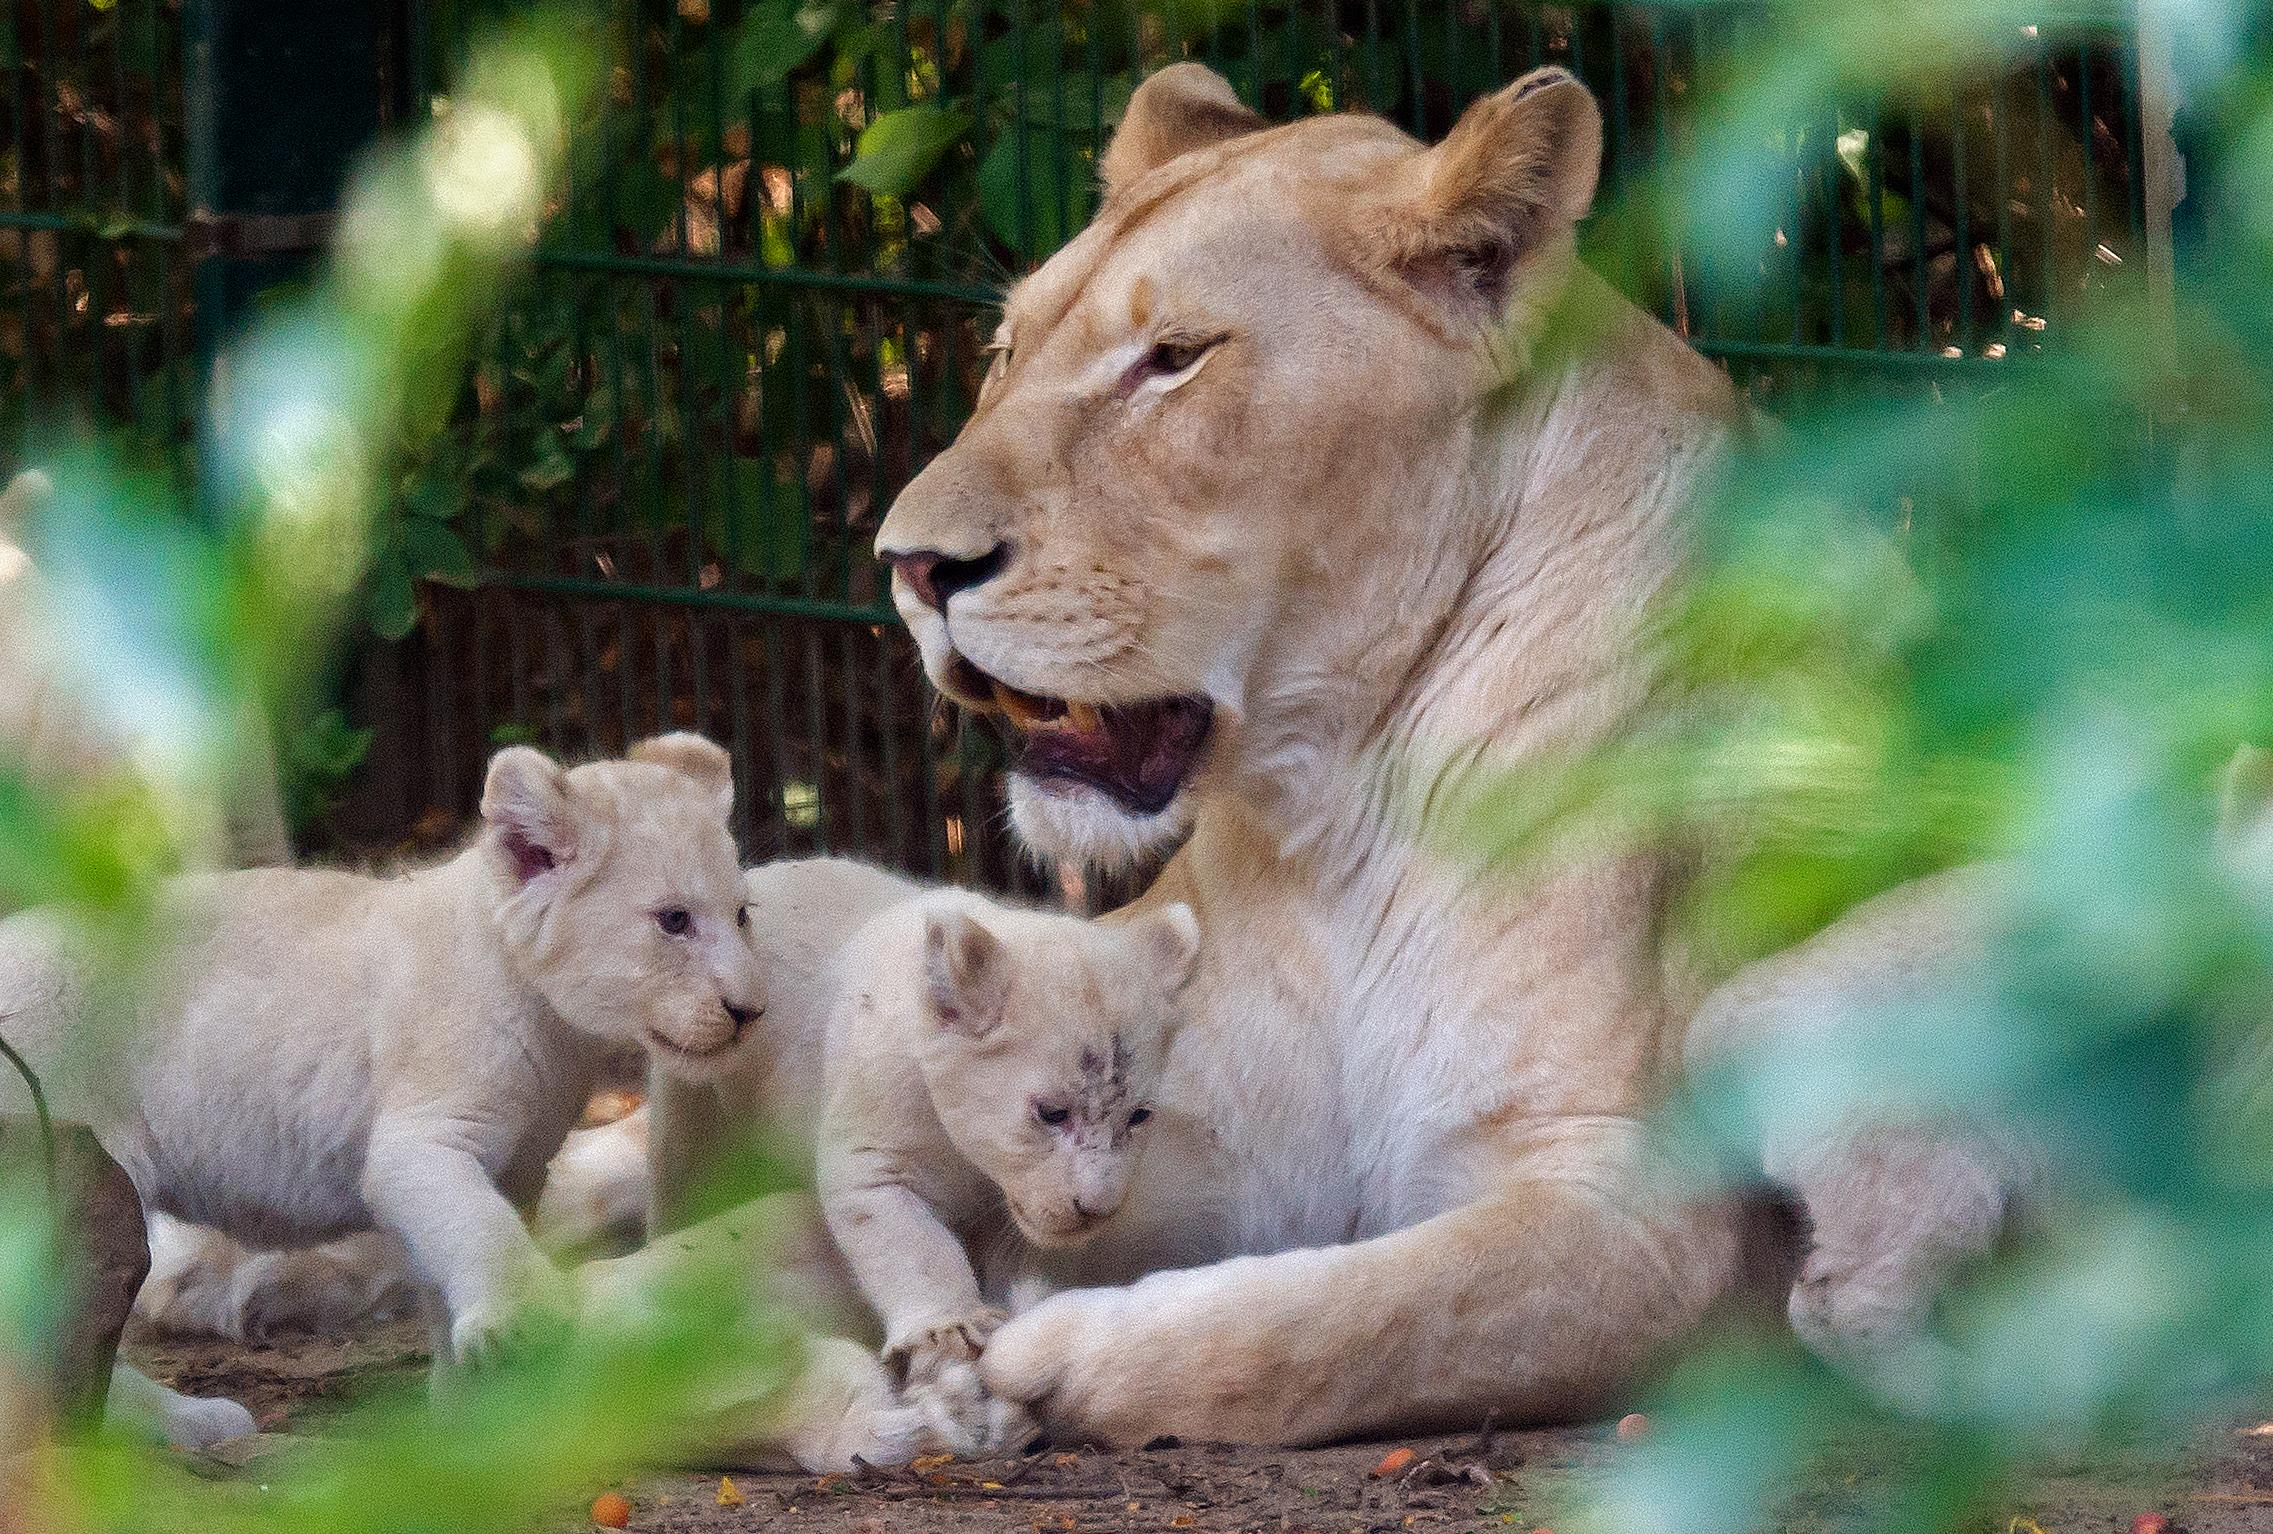 Two of four rare African white lion cubs walk besides their mother Kiara in their enclosure at the zoo in Magdeburg, Germany, Friday, Aug. 17, 2018. Keepers weighed the three males and one female and carried out health checks on the cats, which are rare in the wild. The young lions were born on July 5, 2018. (AP Photo/Jens Meyer)